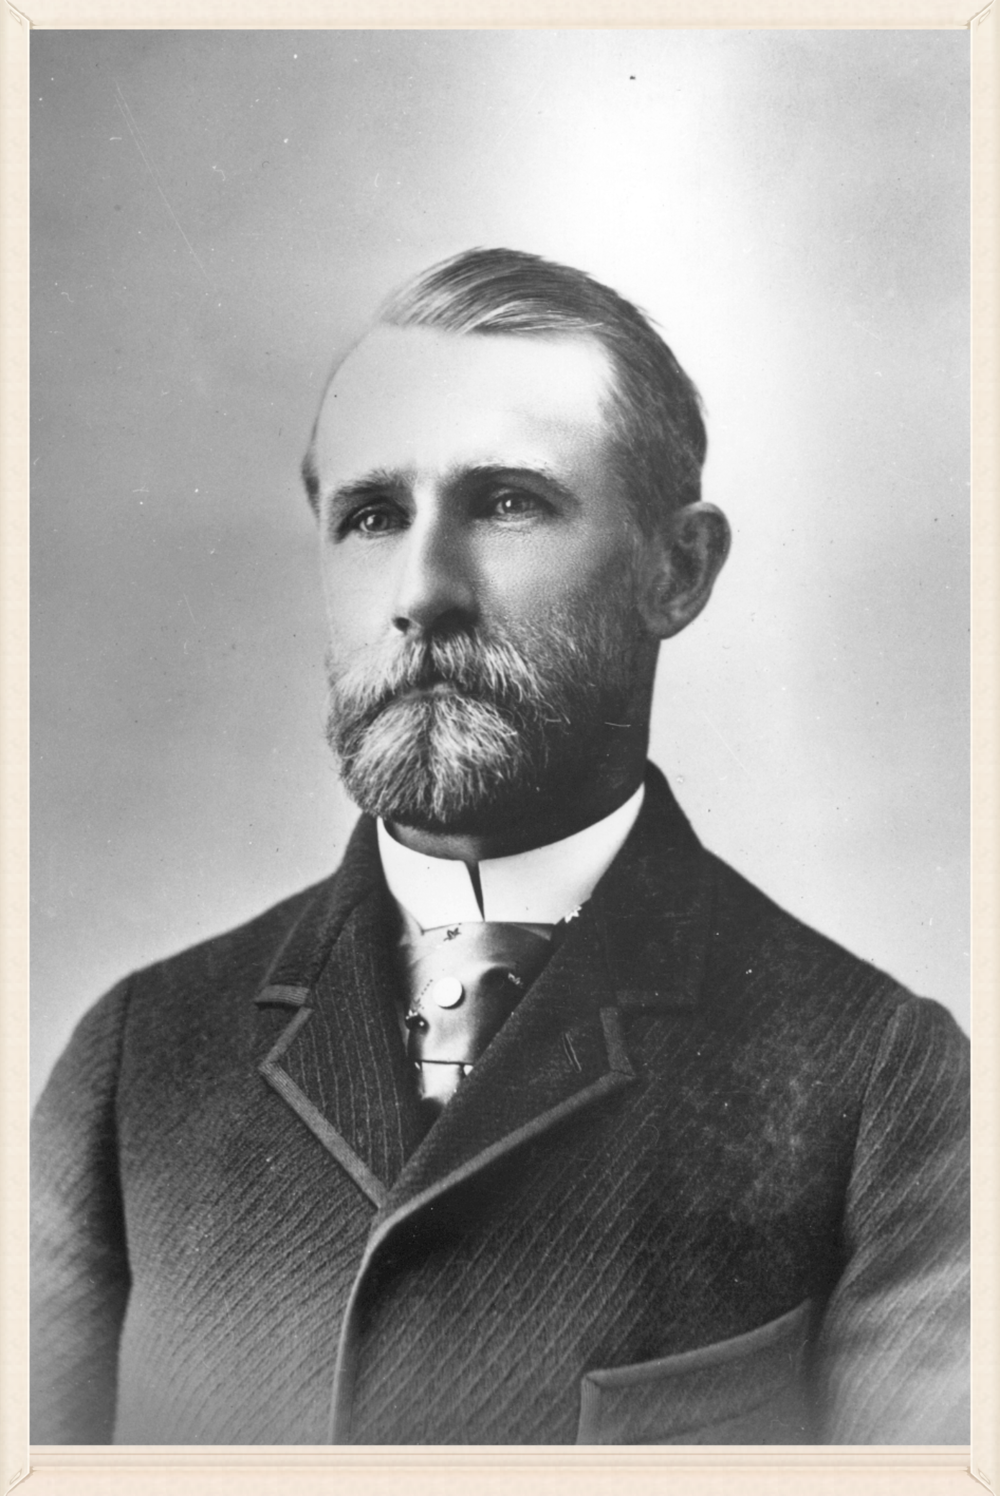 William E. Hazeltine